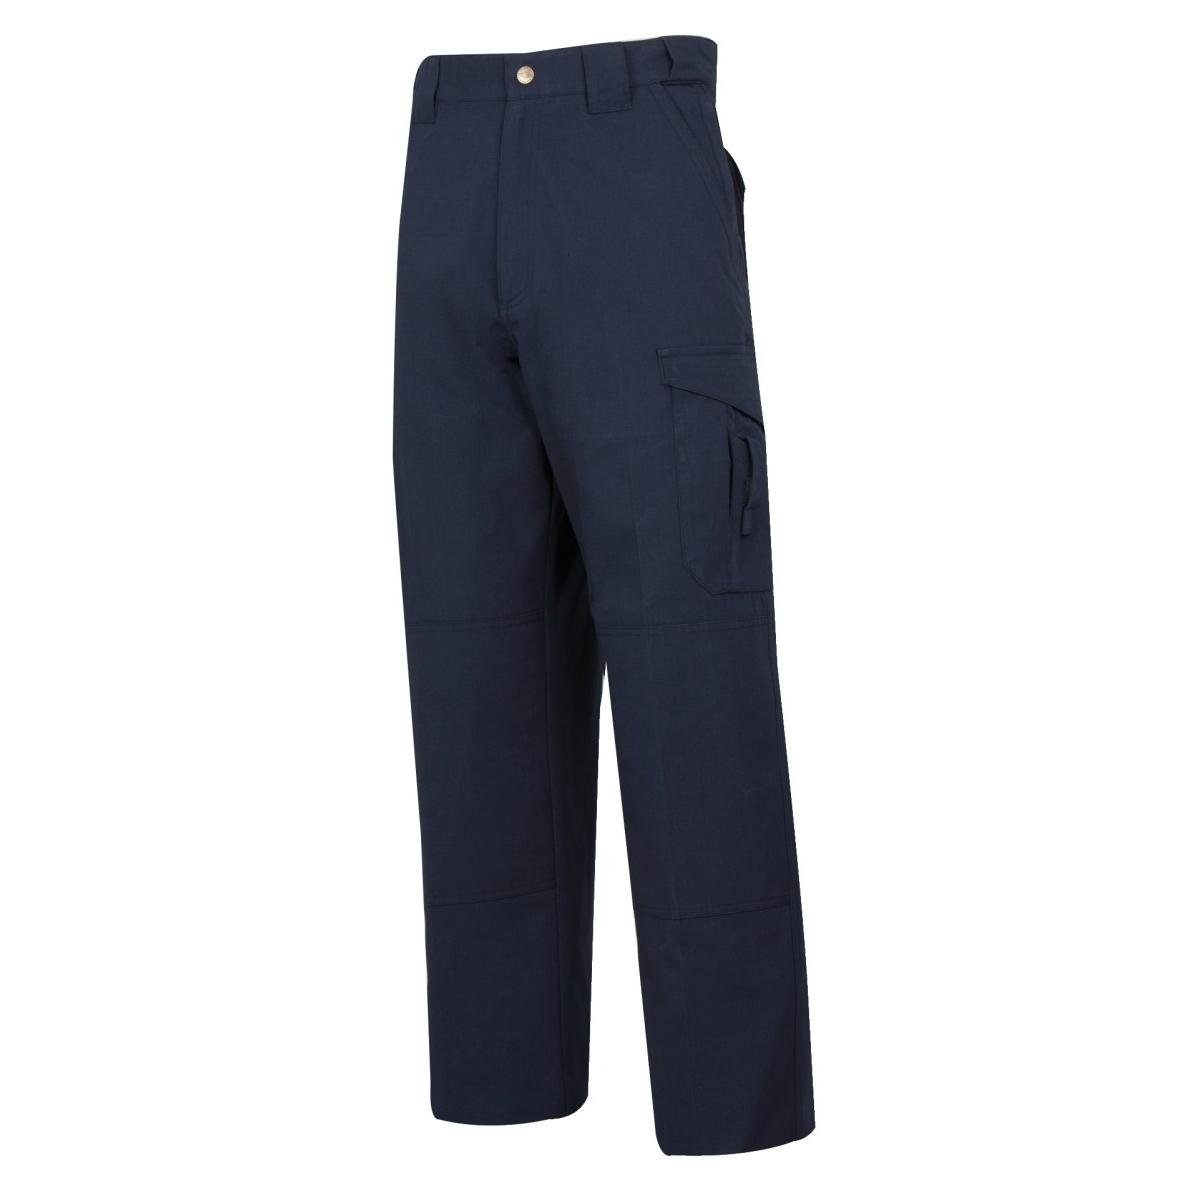 24-7 P/C R/S EMS Pants, 1 Height, 14 Width, W: 34 Large: Unhemmed, Navy 1 Height 14 Width 1120085